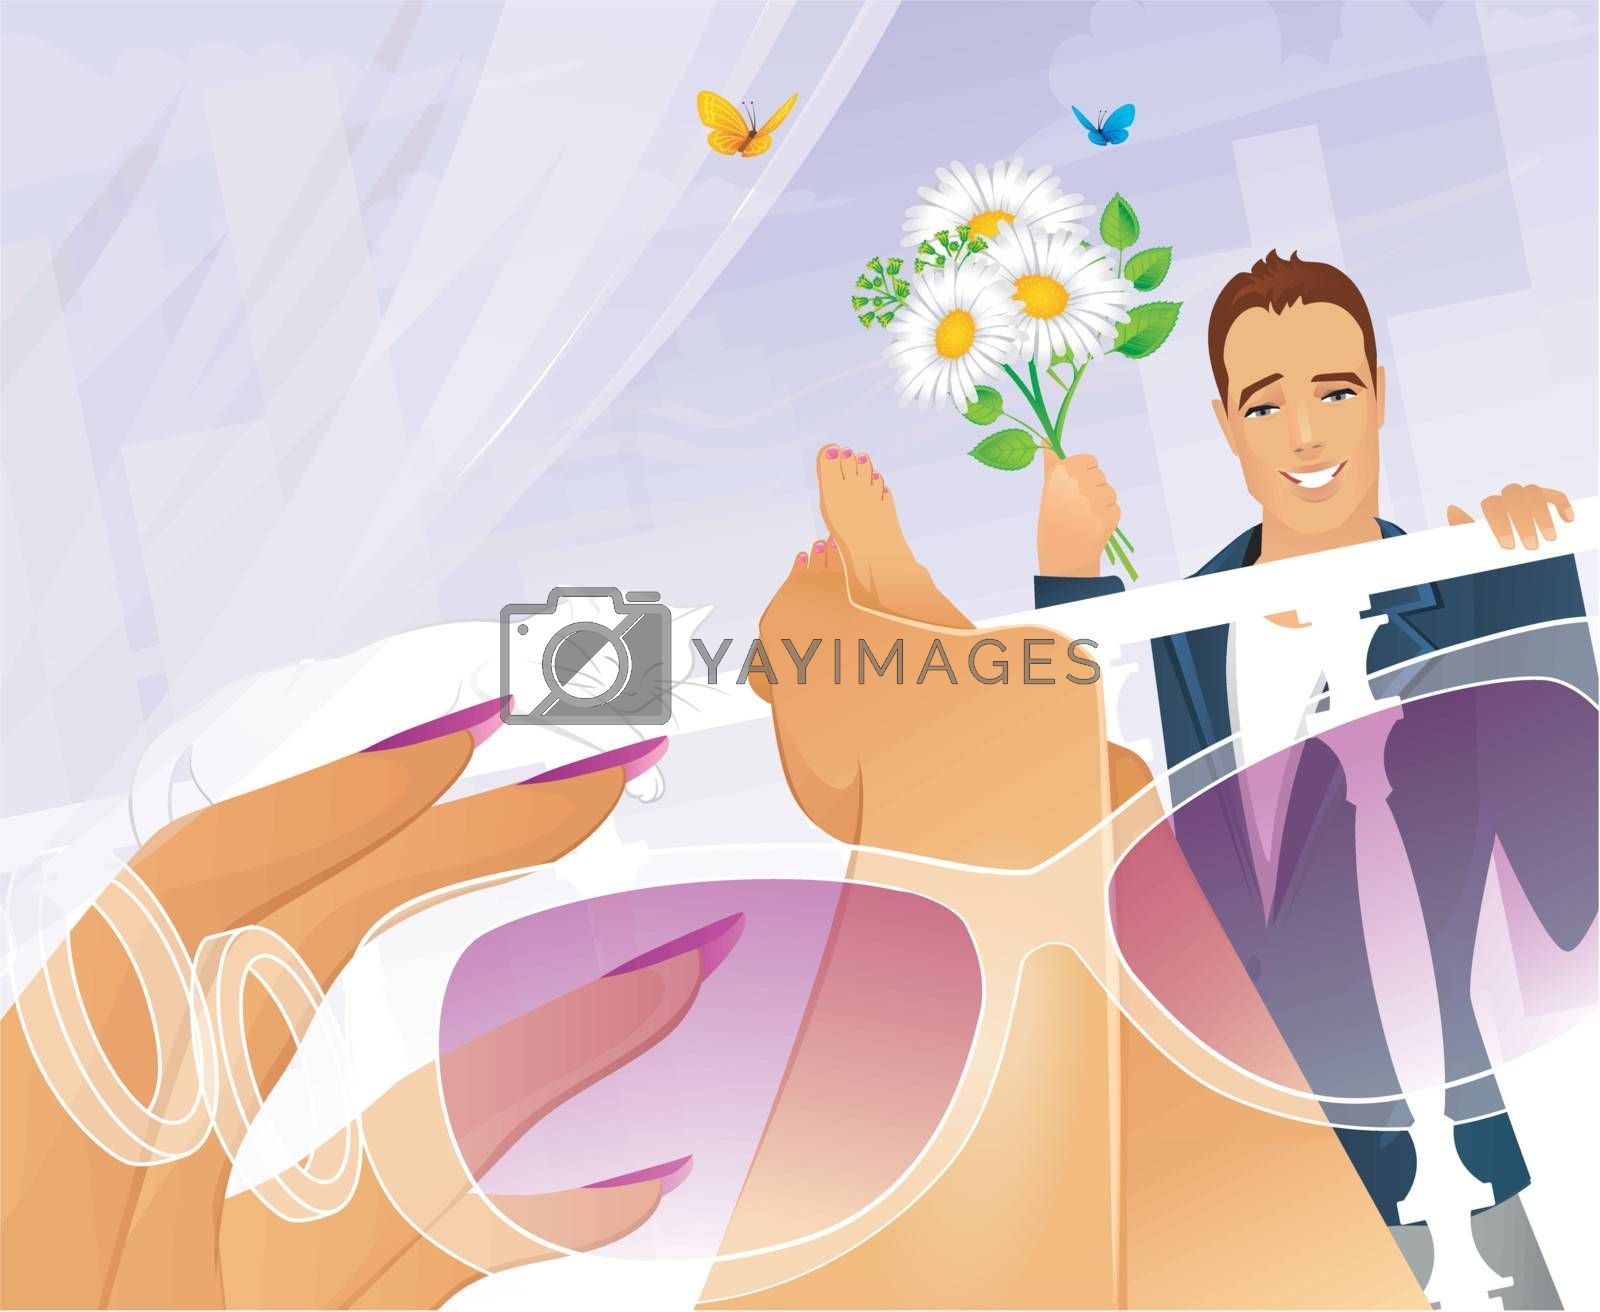 Vector illustration of Romance in the Big City